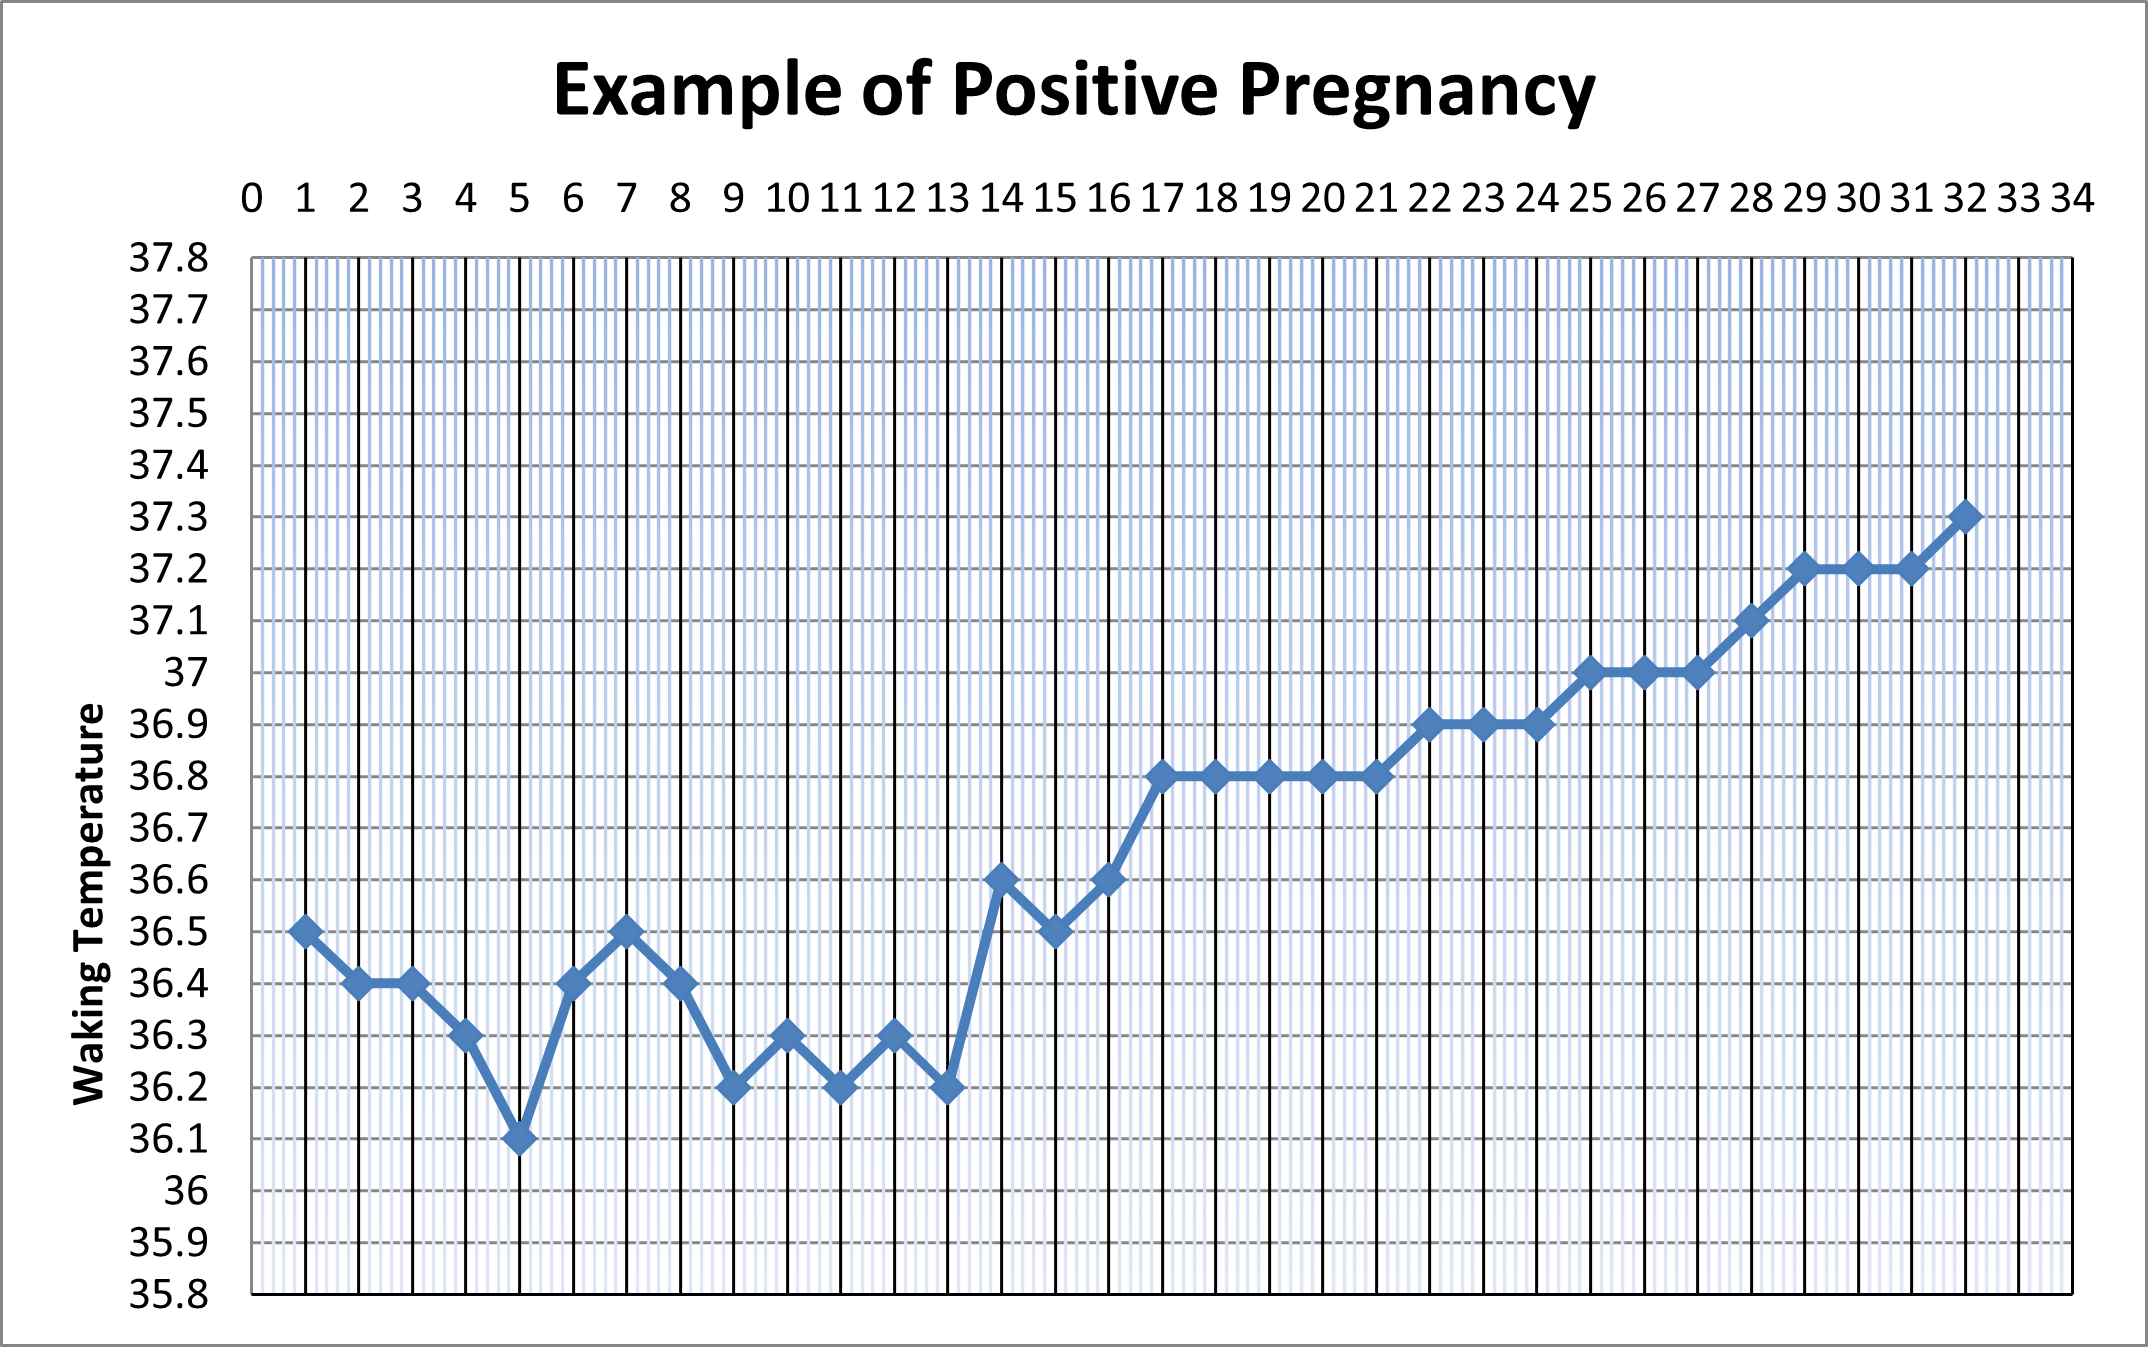 Example of positive pregnancy